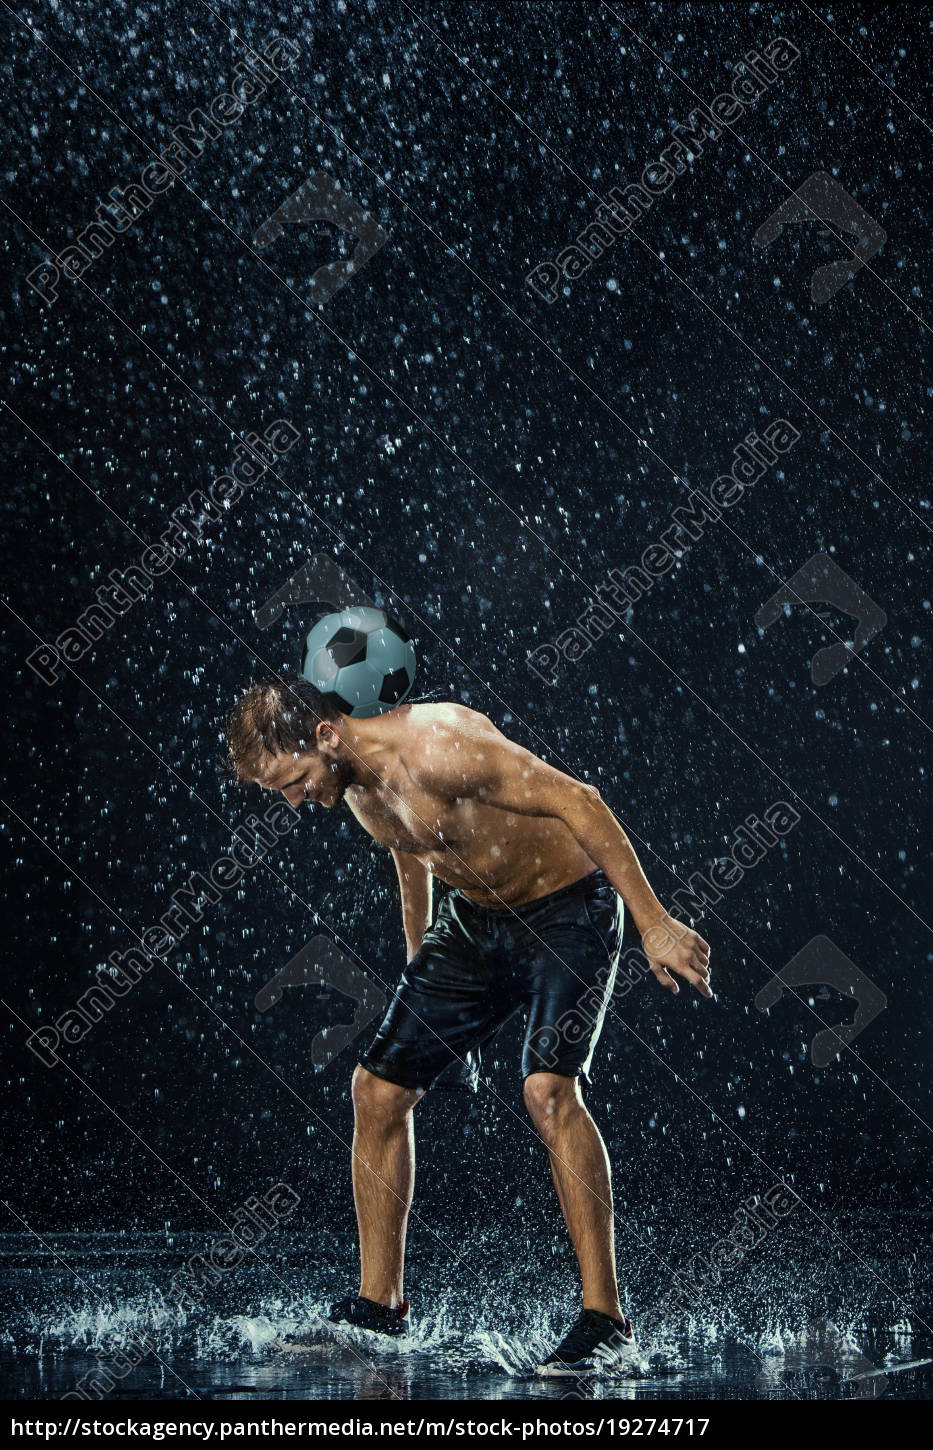 water, drops, around, football, player - 19274717